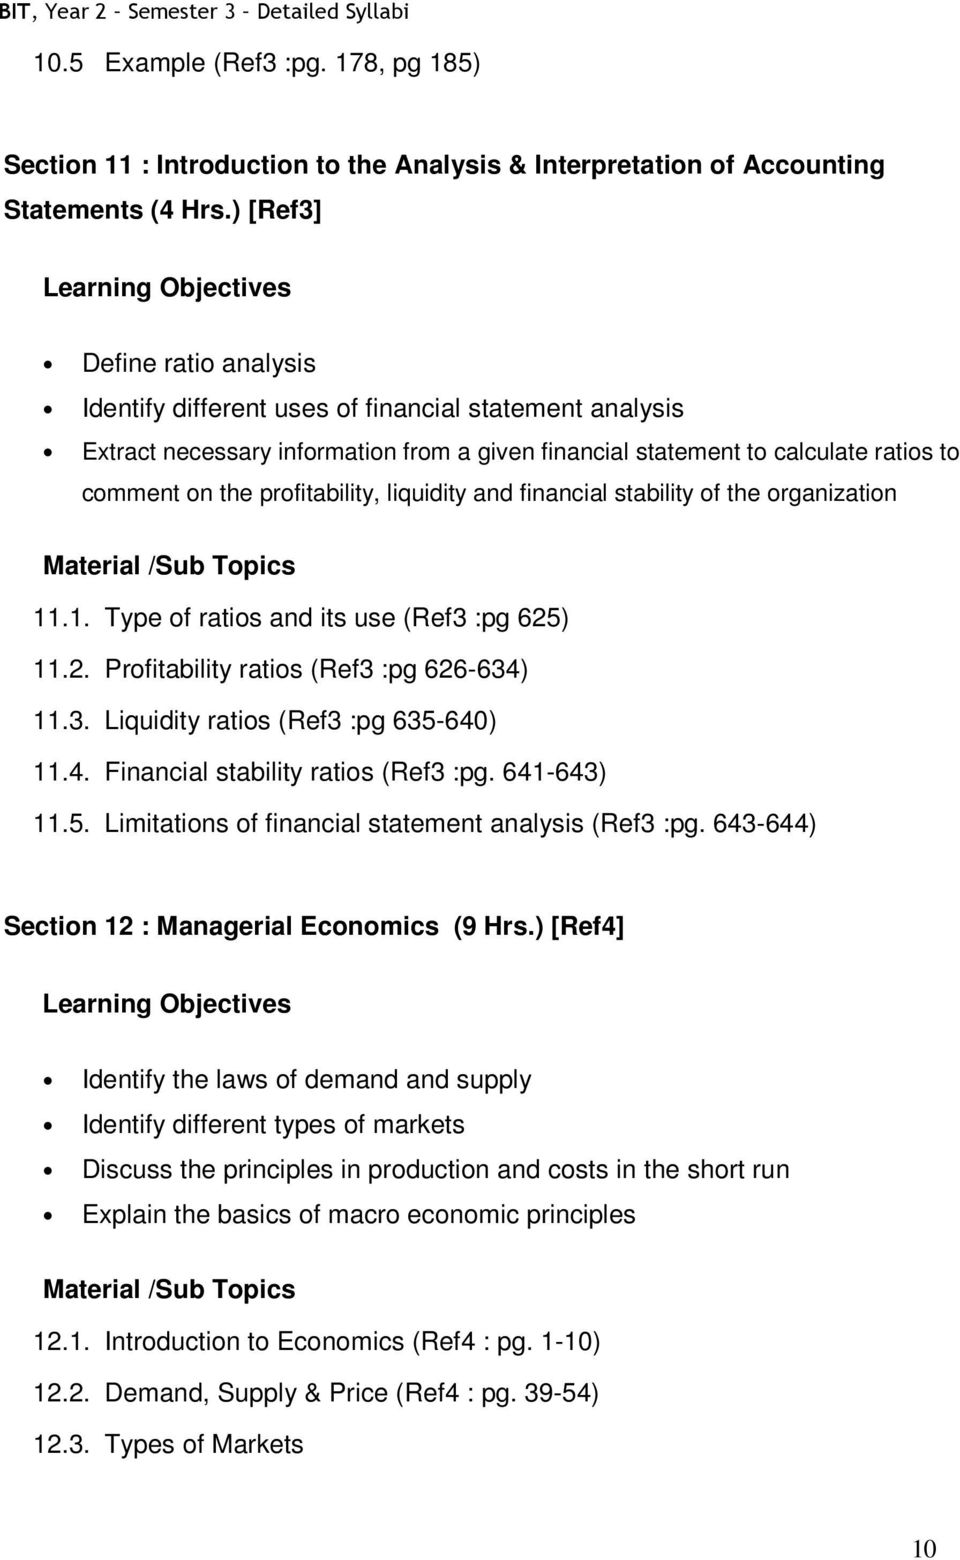 profitability, liquidity and financial stability of the organization 11.1. Type of ratios and its use (Ref3 :pg 625) 11.2. Profitability ratios (Ref3 :pg 626-634) 11.3. Liquidity ratios (Ref3 :pg 635-640) 11.